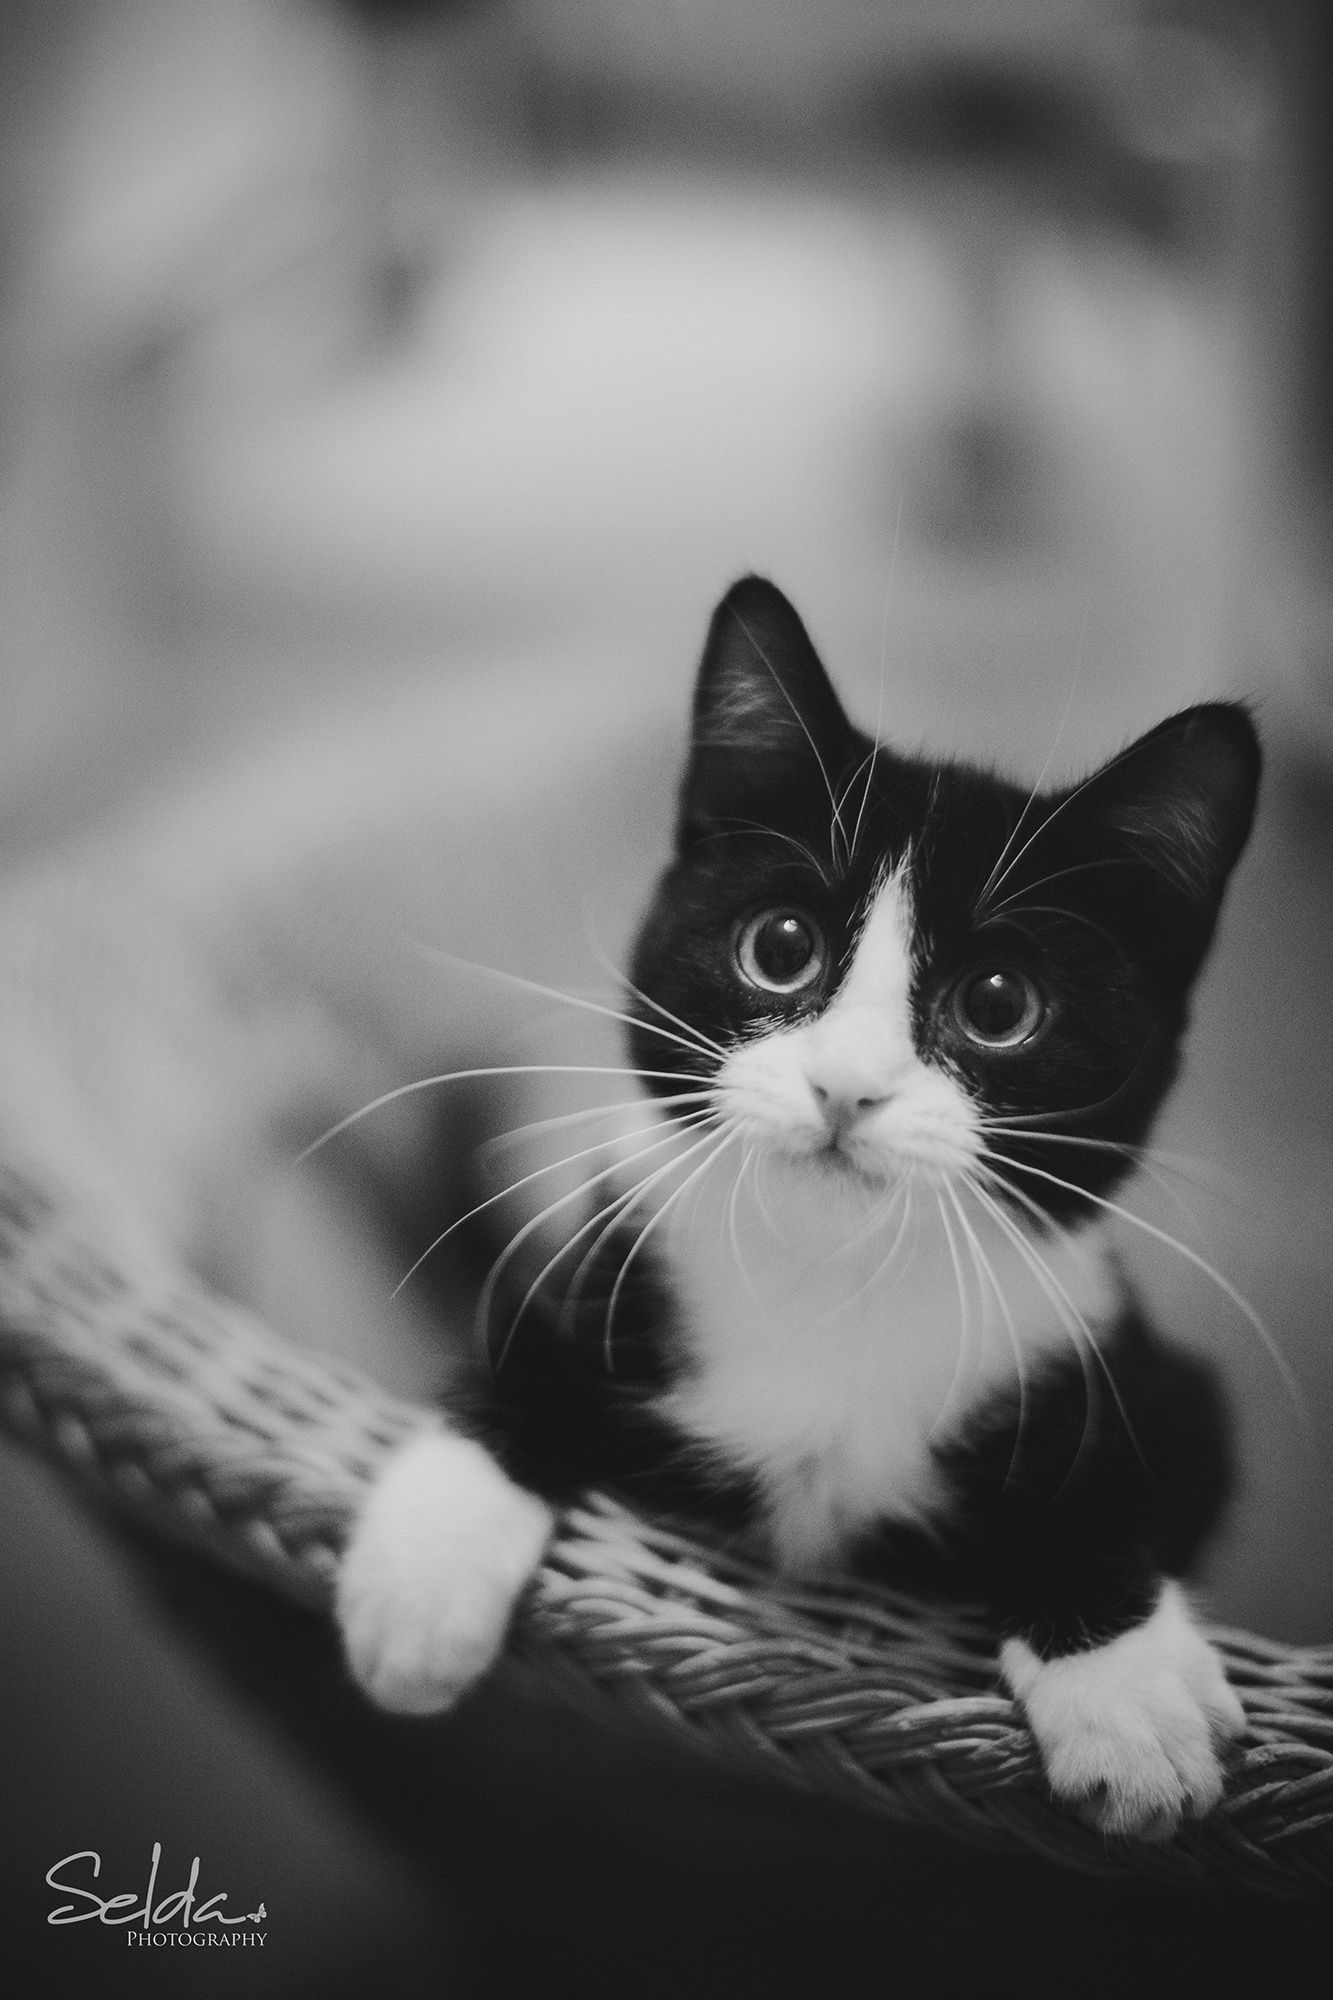 Cute Black And White Tuxedo Kitten Paws Over Edge Of Basket In B B S Chats Adorables Chats Et Chatons Bebe Chat